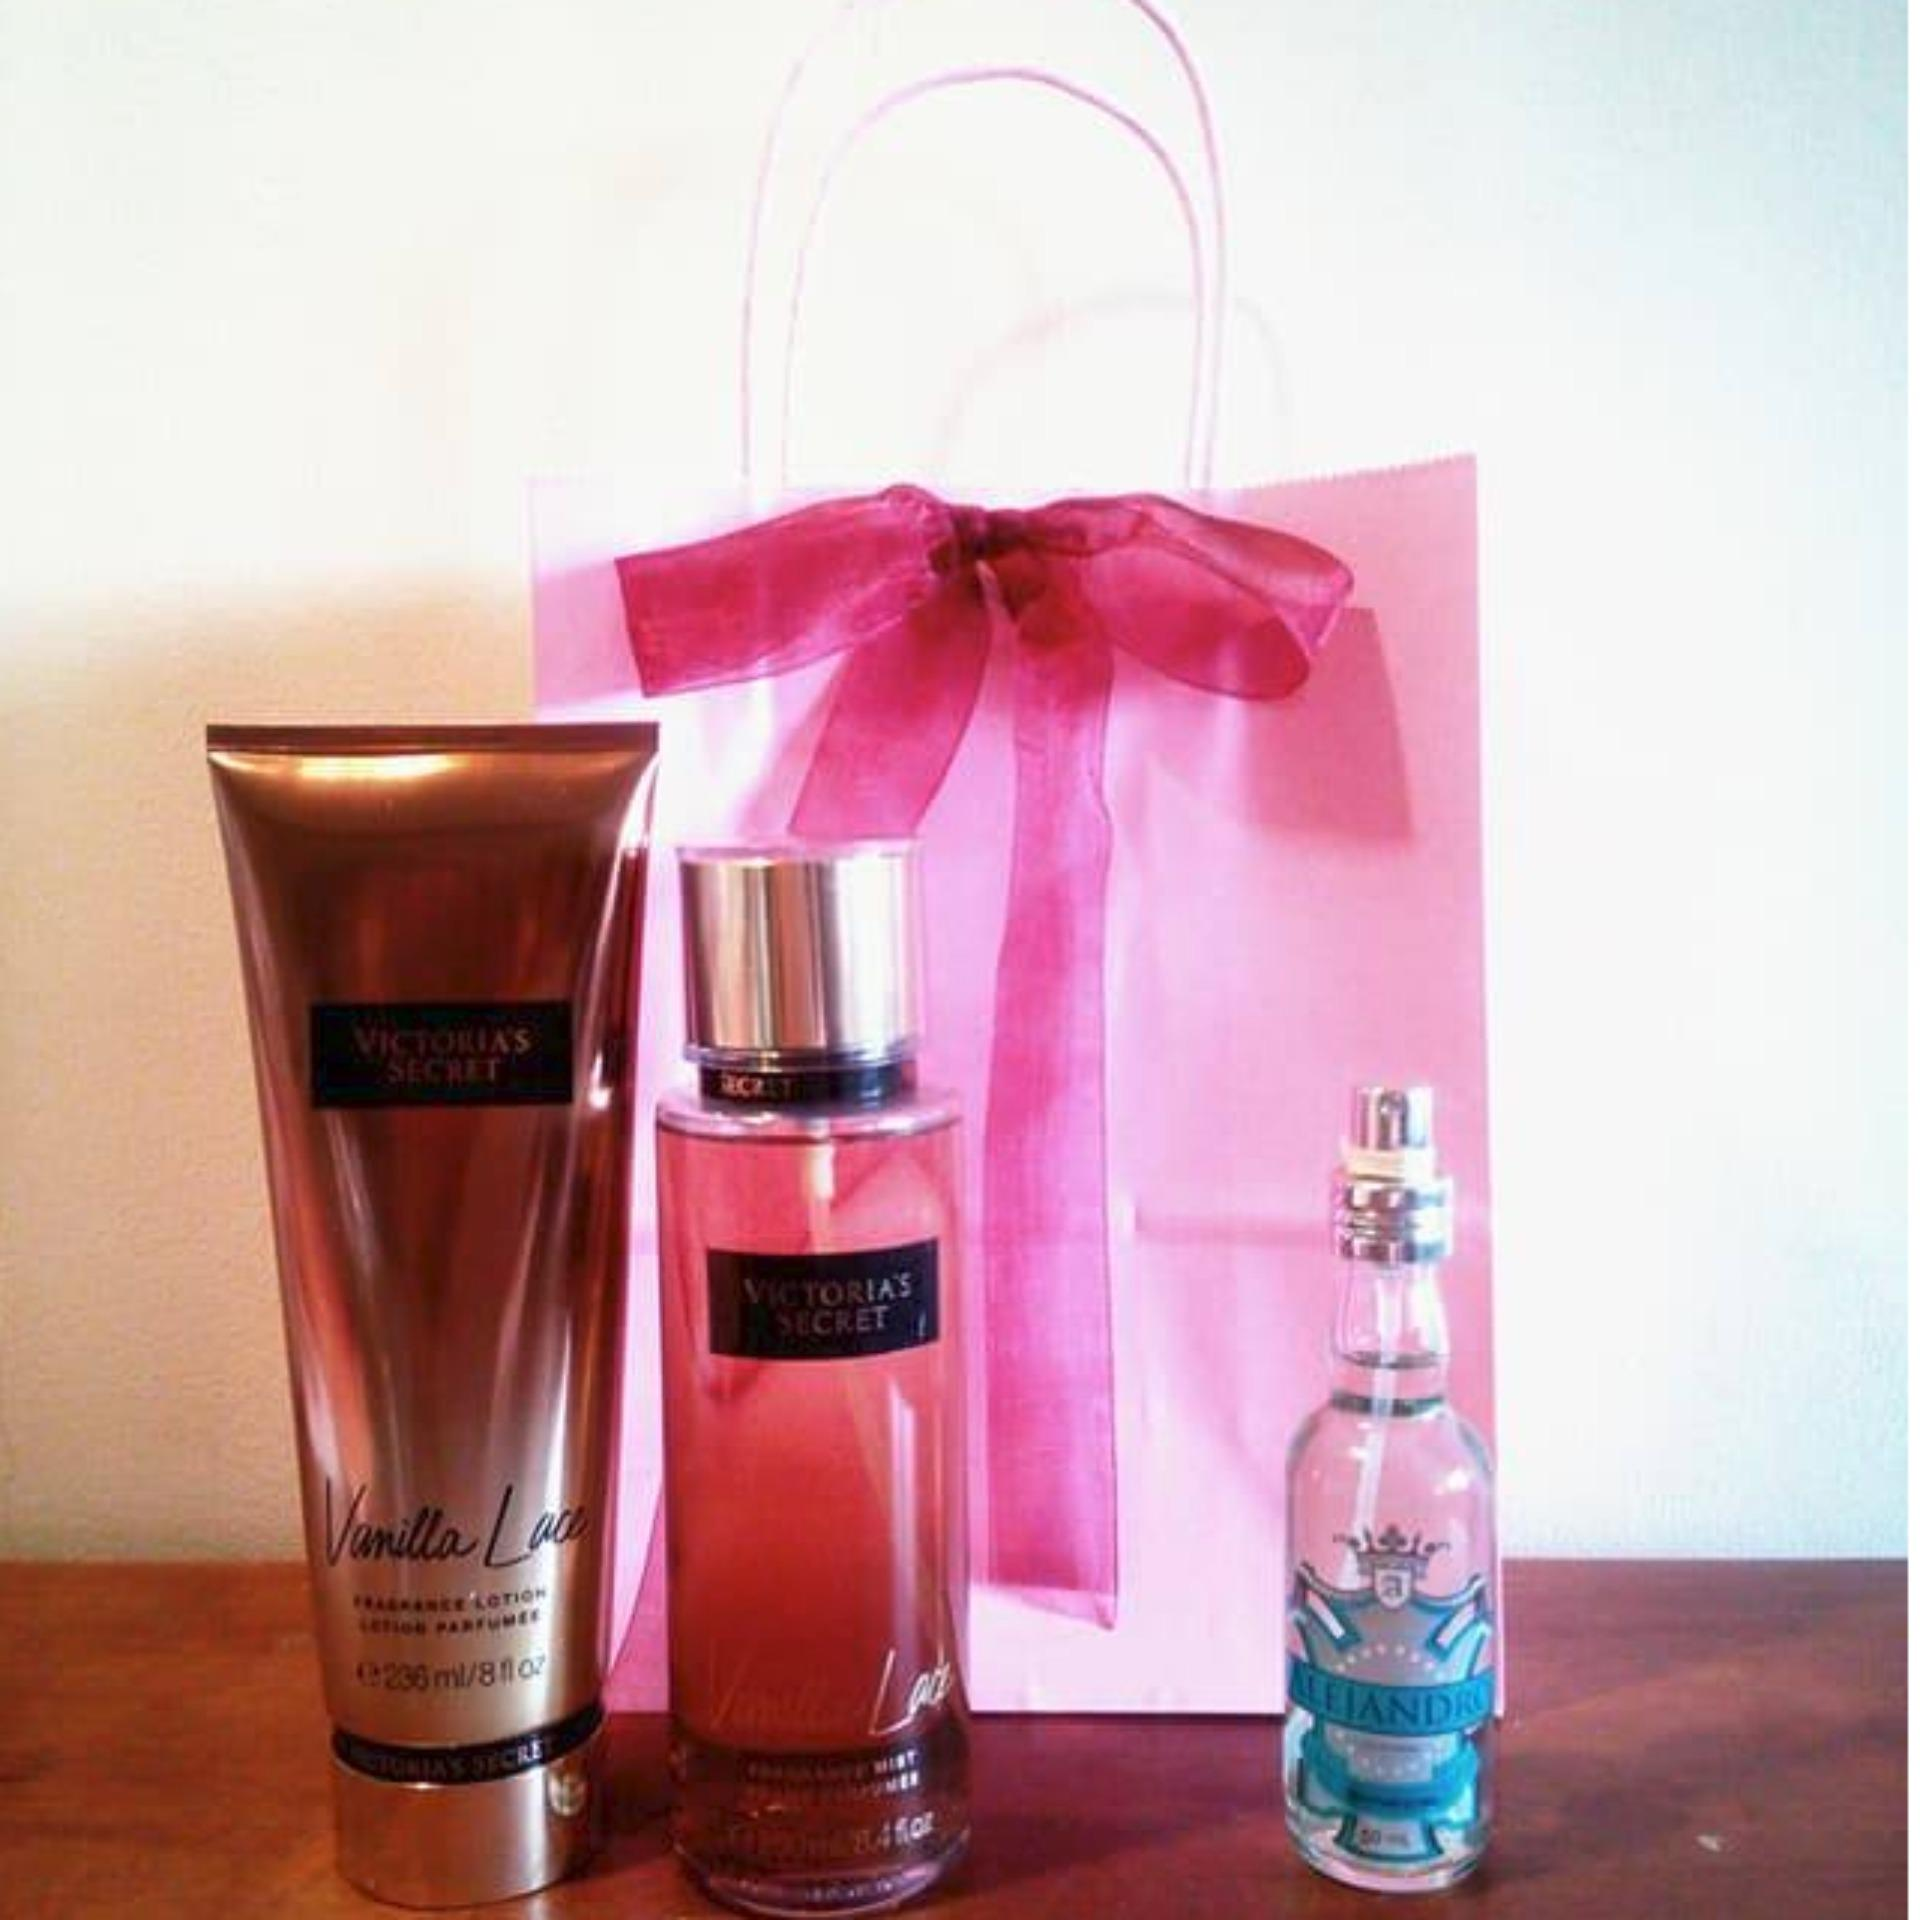 9f368d848e5 Victoria s Secret Vanilla Lace Fragrance Lotion and Victoria s Secret  Vanilla Lace Fragrance Mist